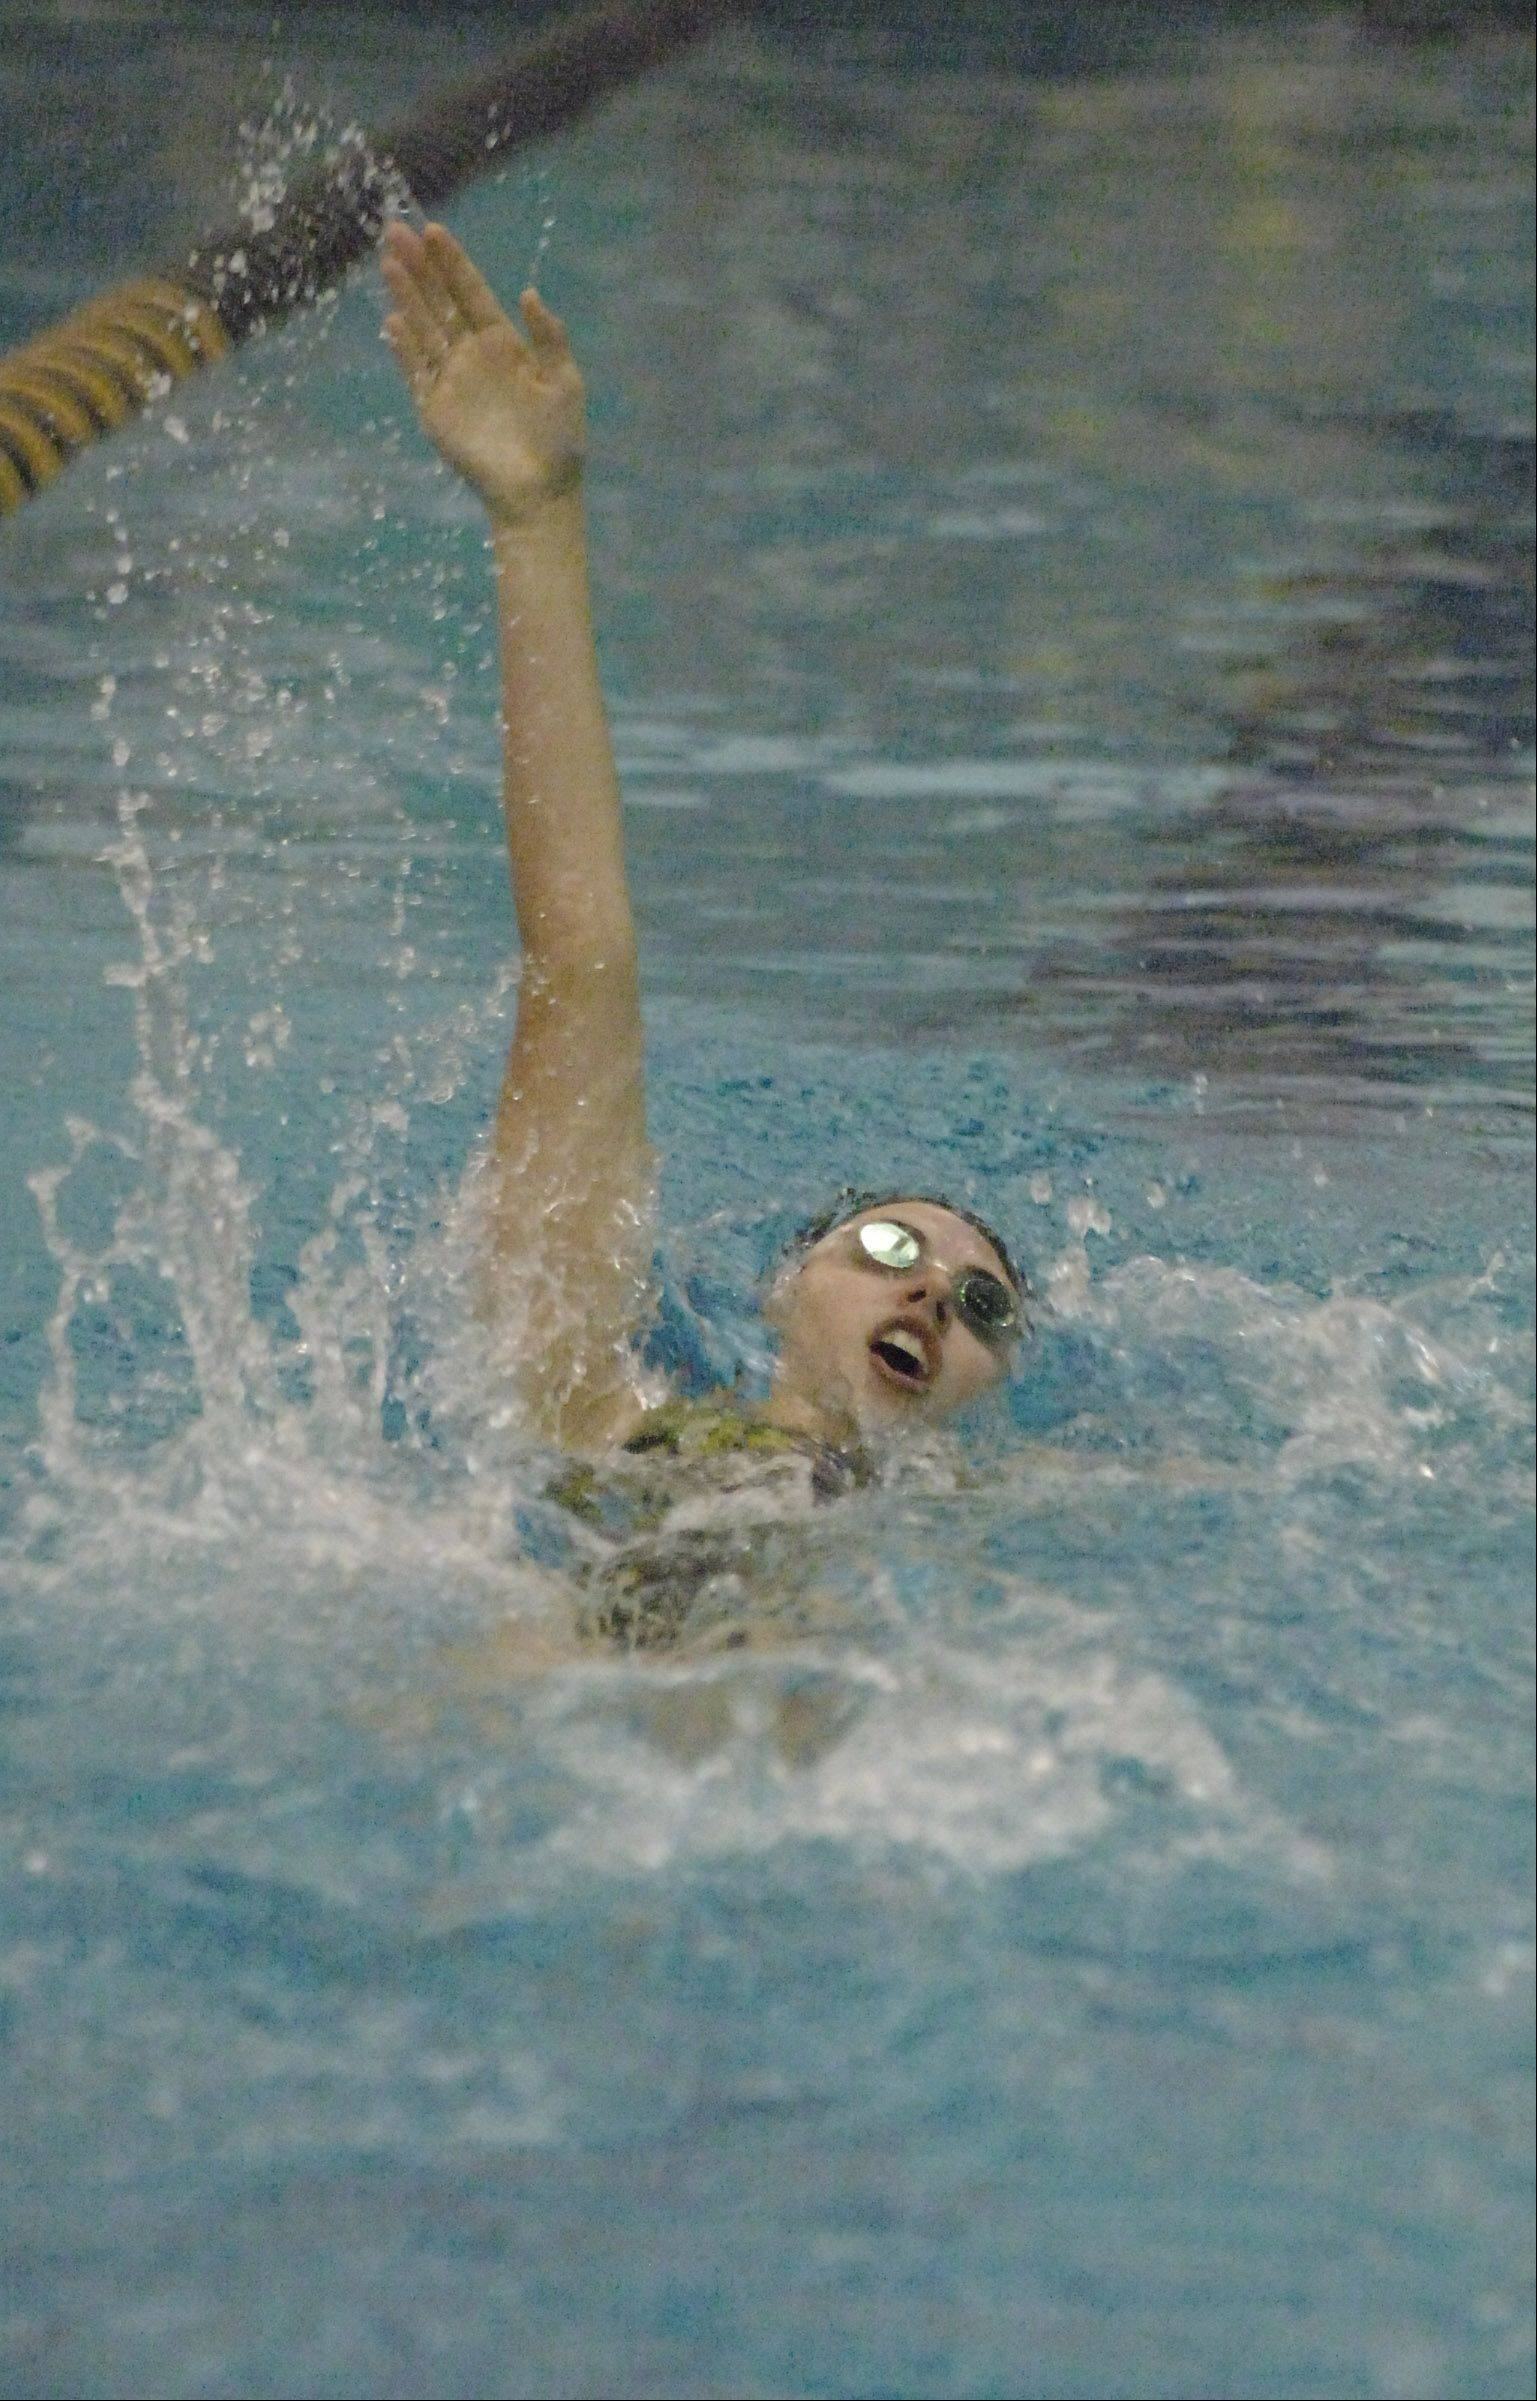 Katelyn Deters of Metea swims the 200 IM during the Neuqua Valley girls swimming invitational Saturday.